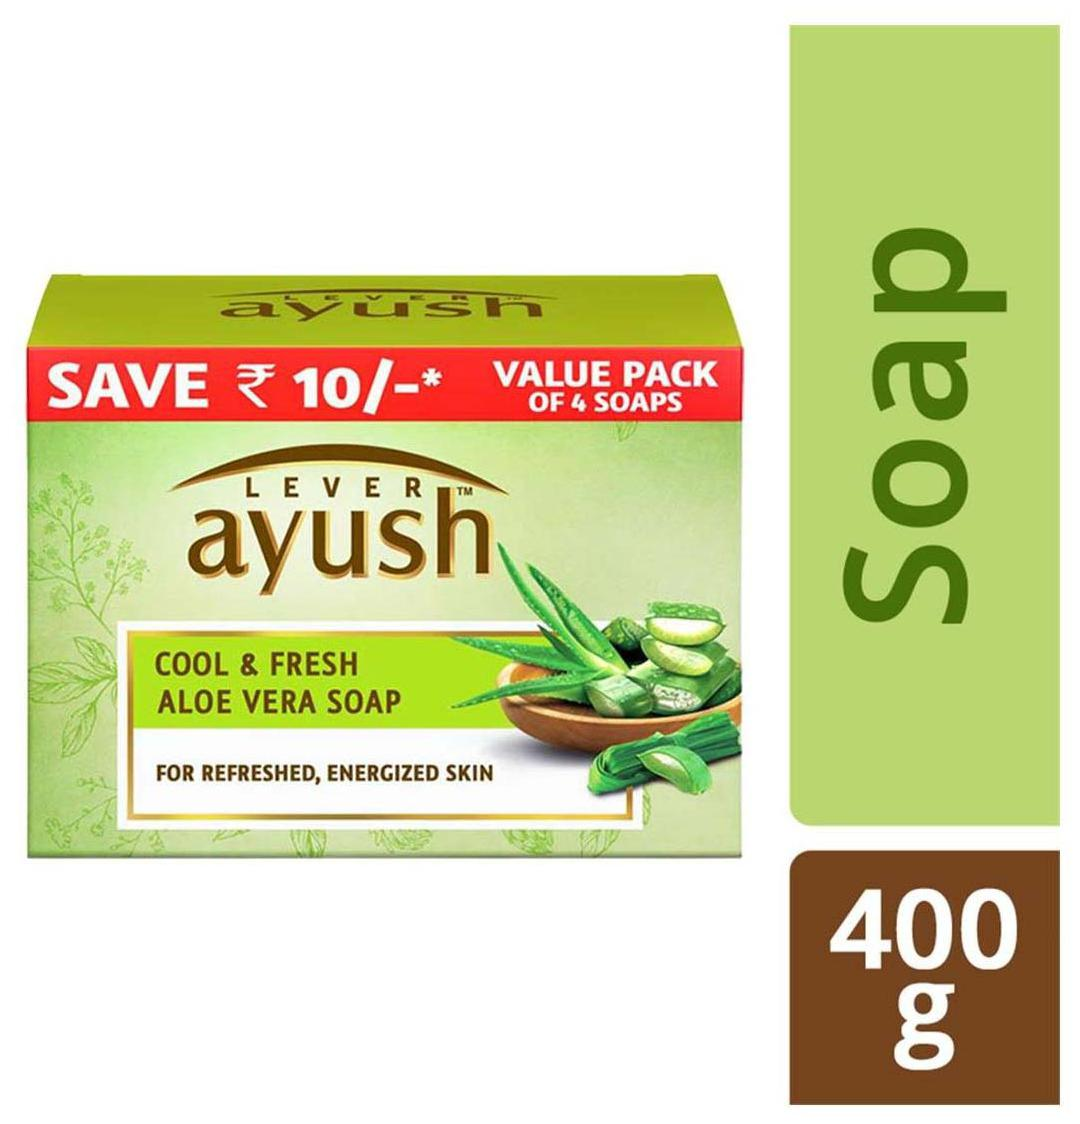 https://assetscdn1.paytm.com/images/catalog/product/F/FA/FASLEVER-AYUSH-TBL497476275FE82/a_8.jpg